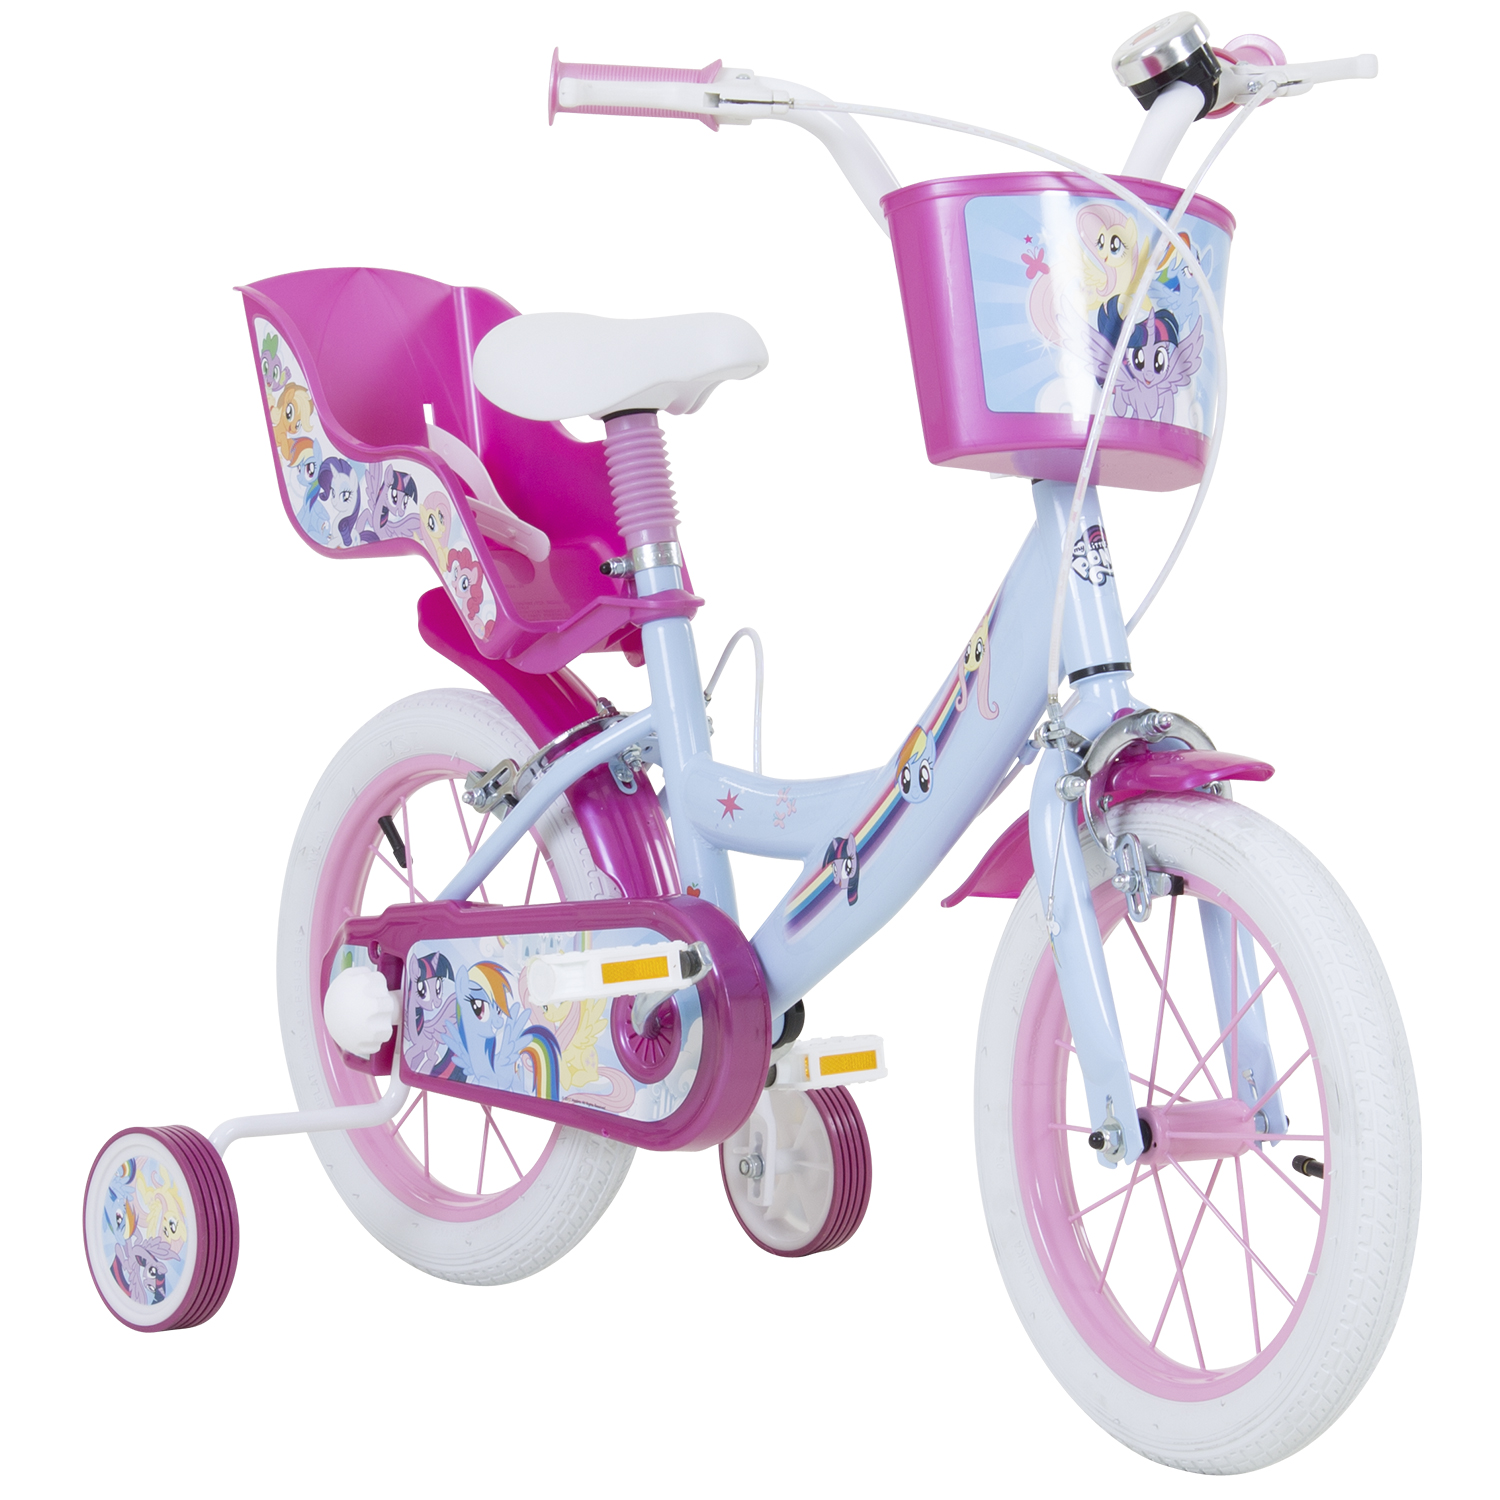 14 zoll my little pony kinderrad kinderfahrrad m dchen 3 jahre fahrrad 4250845925457 ebay. Black Bedroom Furniture Sets. Home Design Ideas